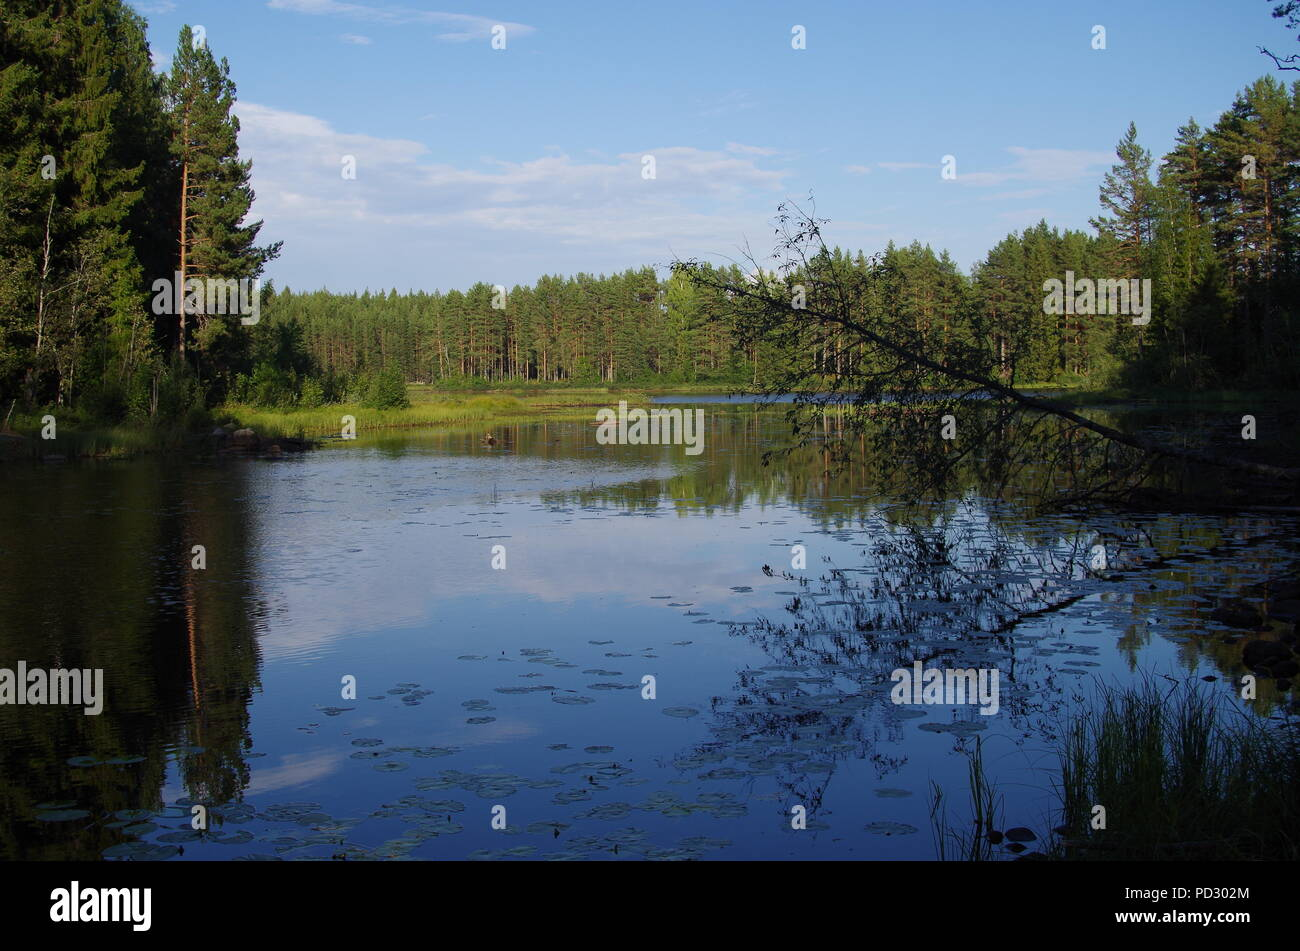 A beautiful and calm lake in the forests of Dalarna in Sweden - Stock Image